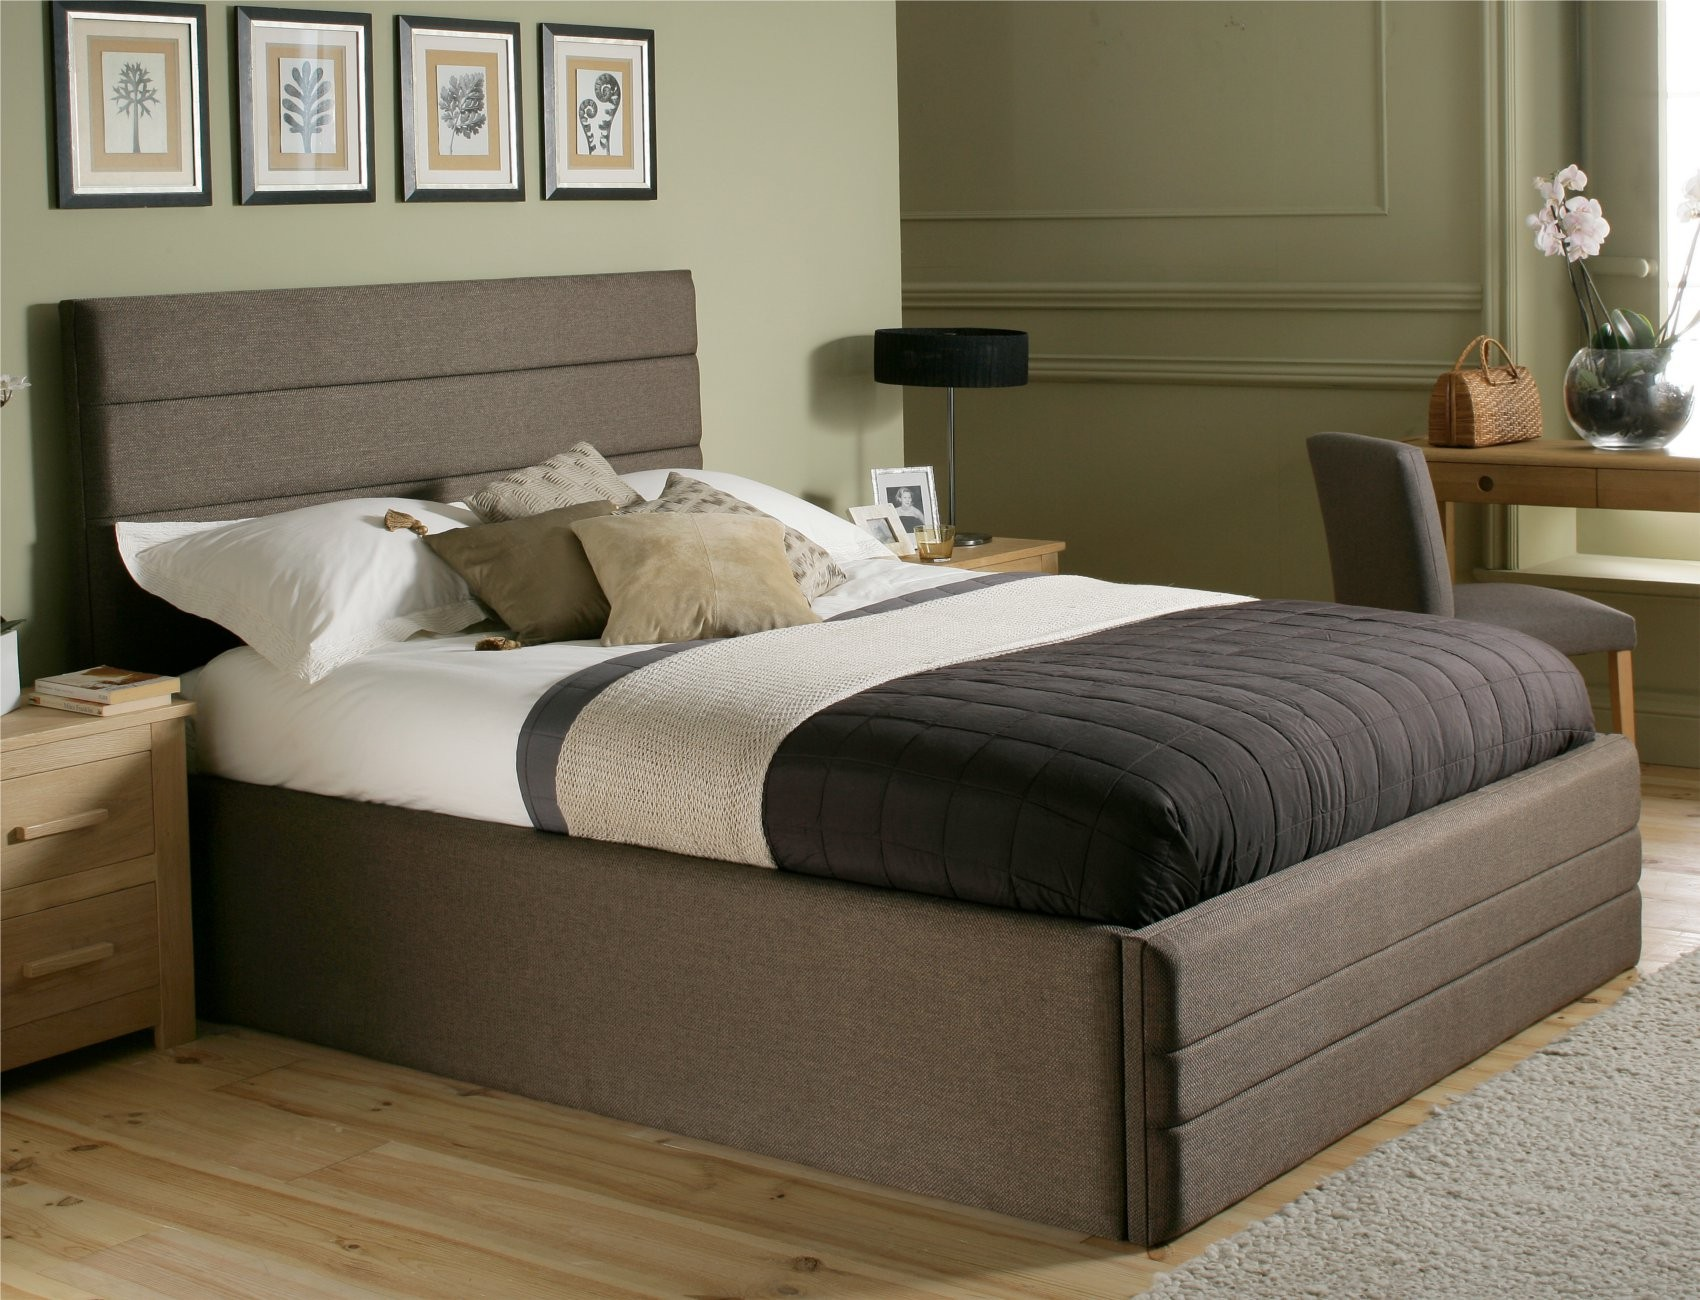 New King Size Bed Mattress